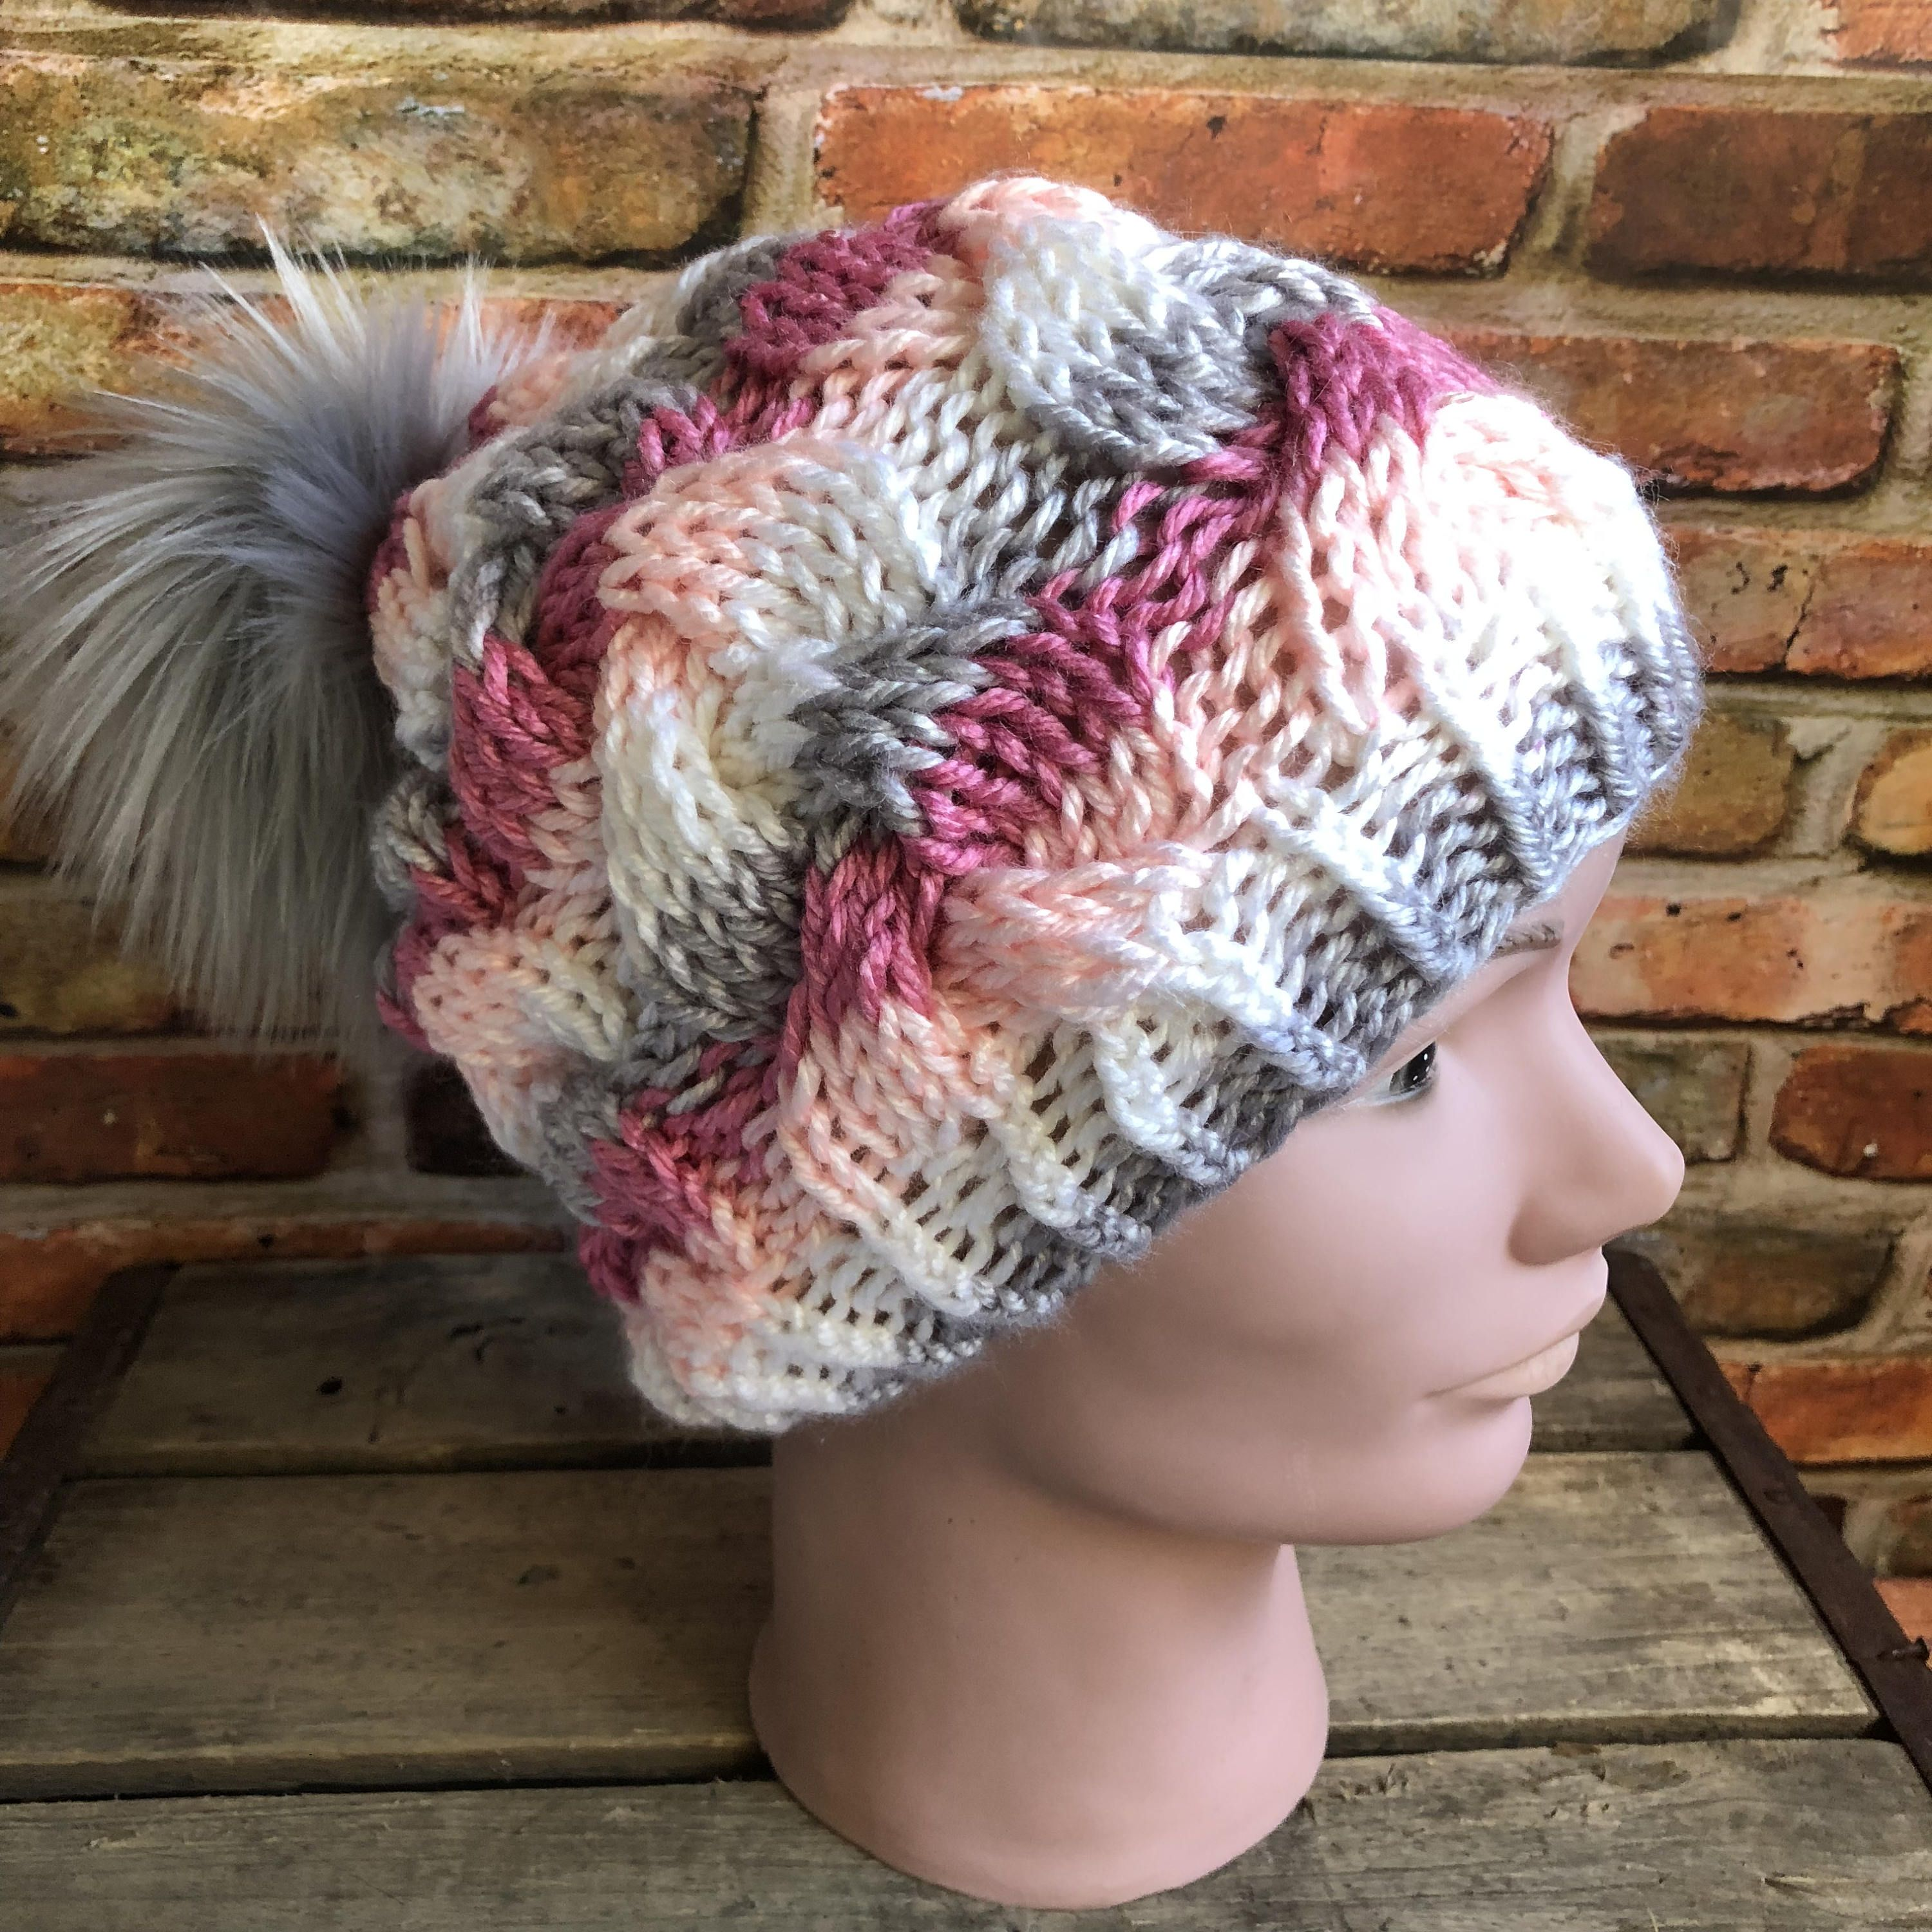 cf323164af5 Hand Knit Braided Cable Beanie Super Soft Acrylic Bulky Yarn Silver Fox  Faux Fur Pom Pom Handmade Pink Grey White Striped Skiing Snow Hat by  kitchenklutter ...